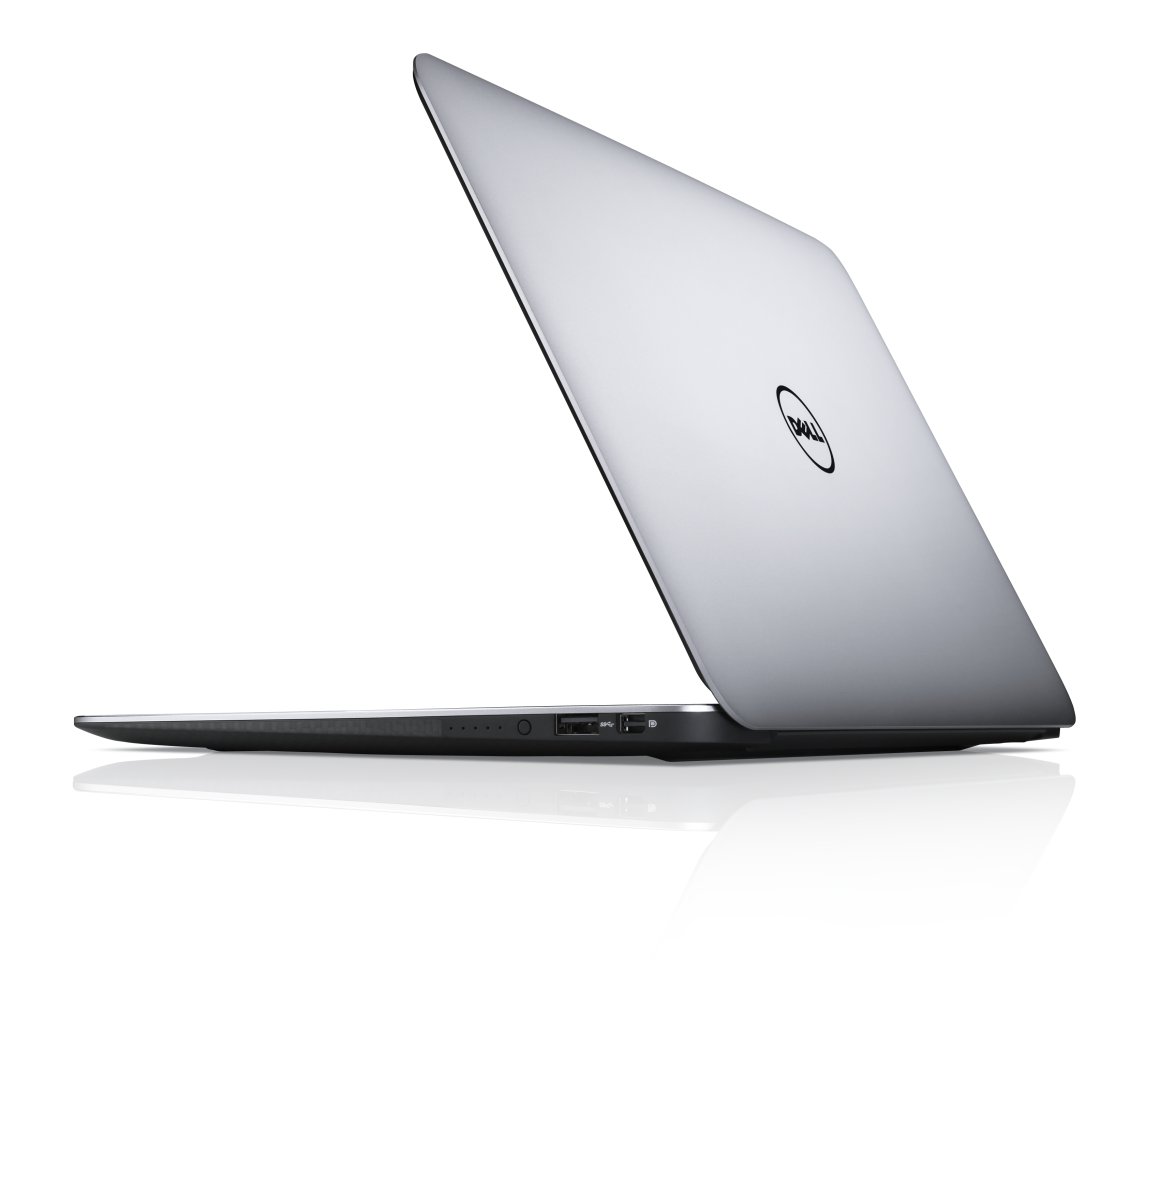 1342351492_dell-xps-13.png